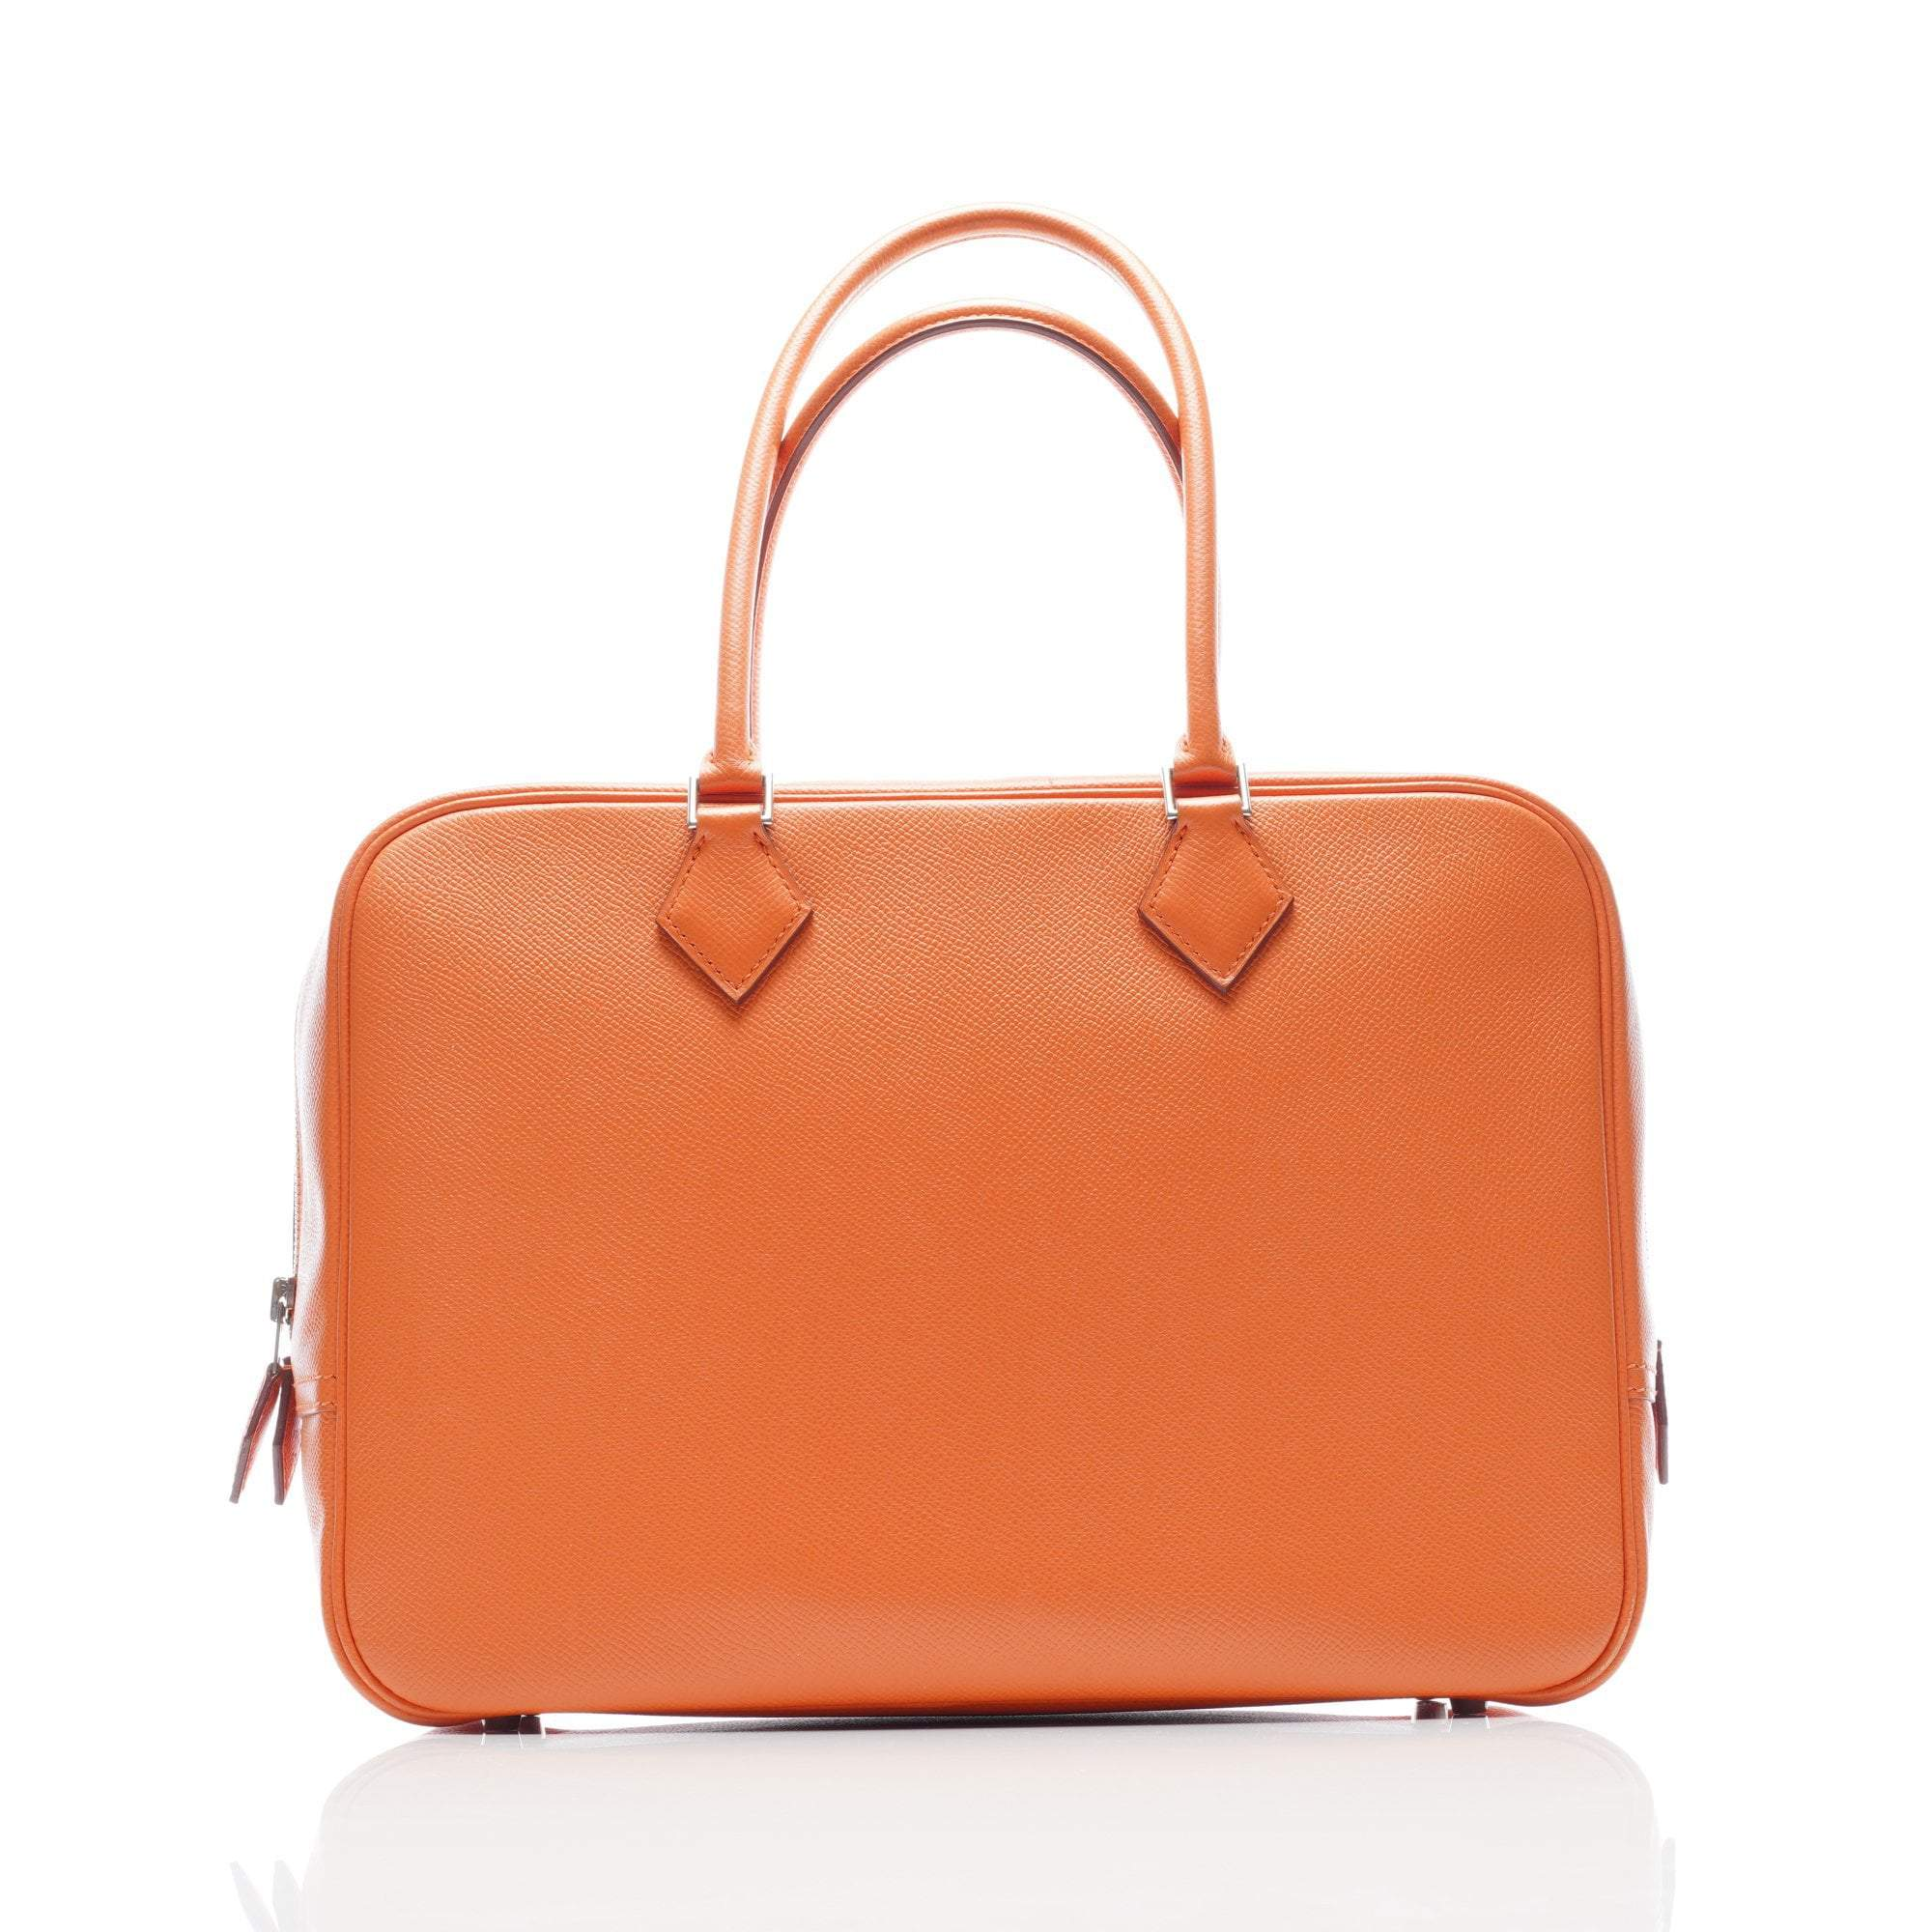 Hermes Orange Travel Victoria Bag